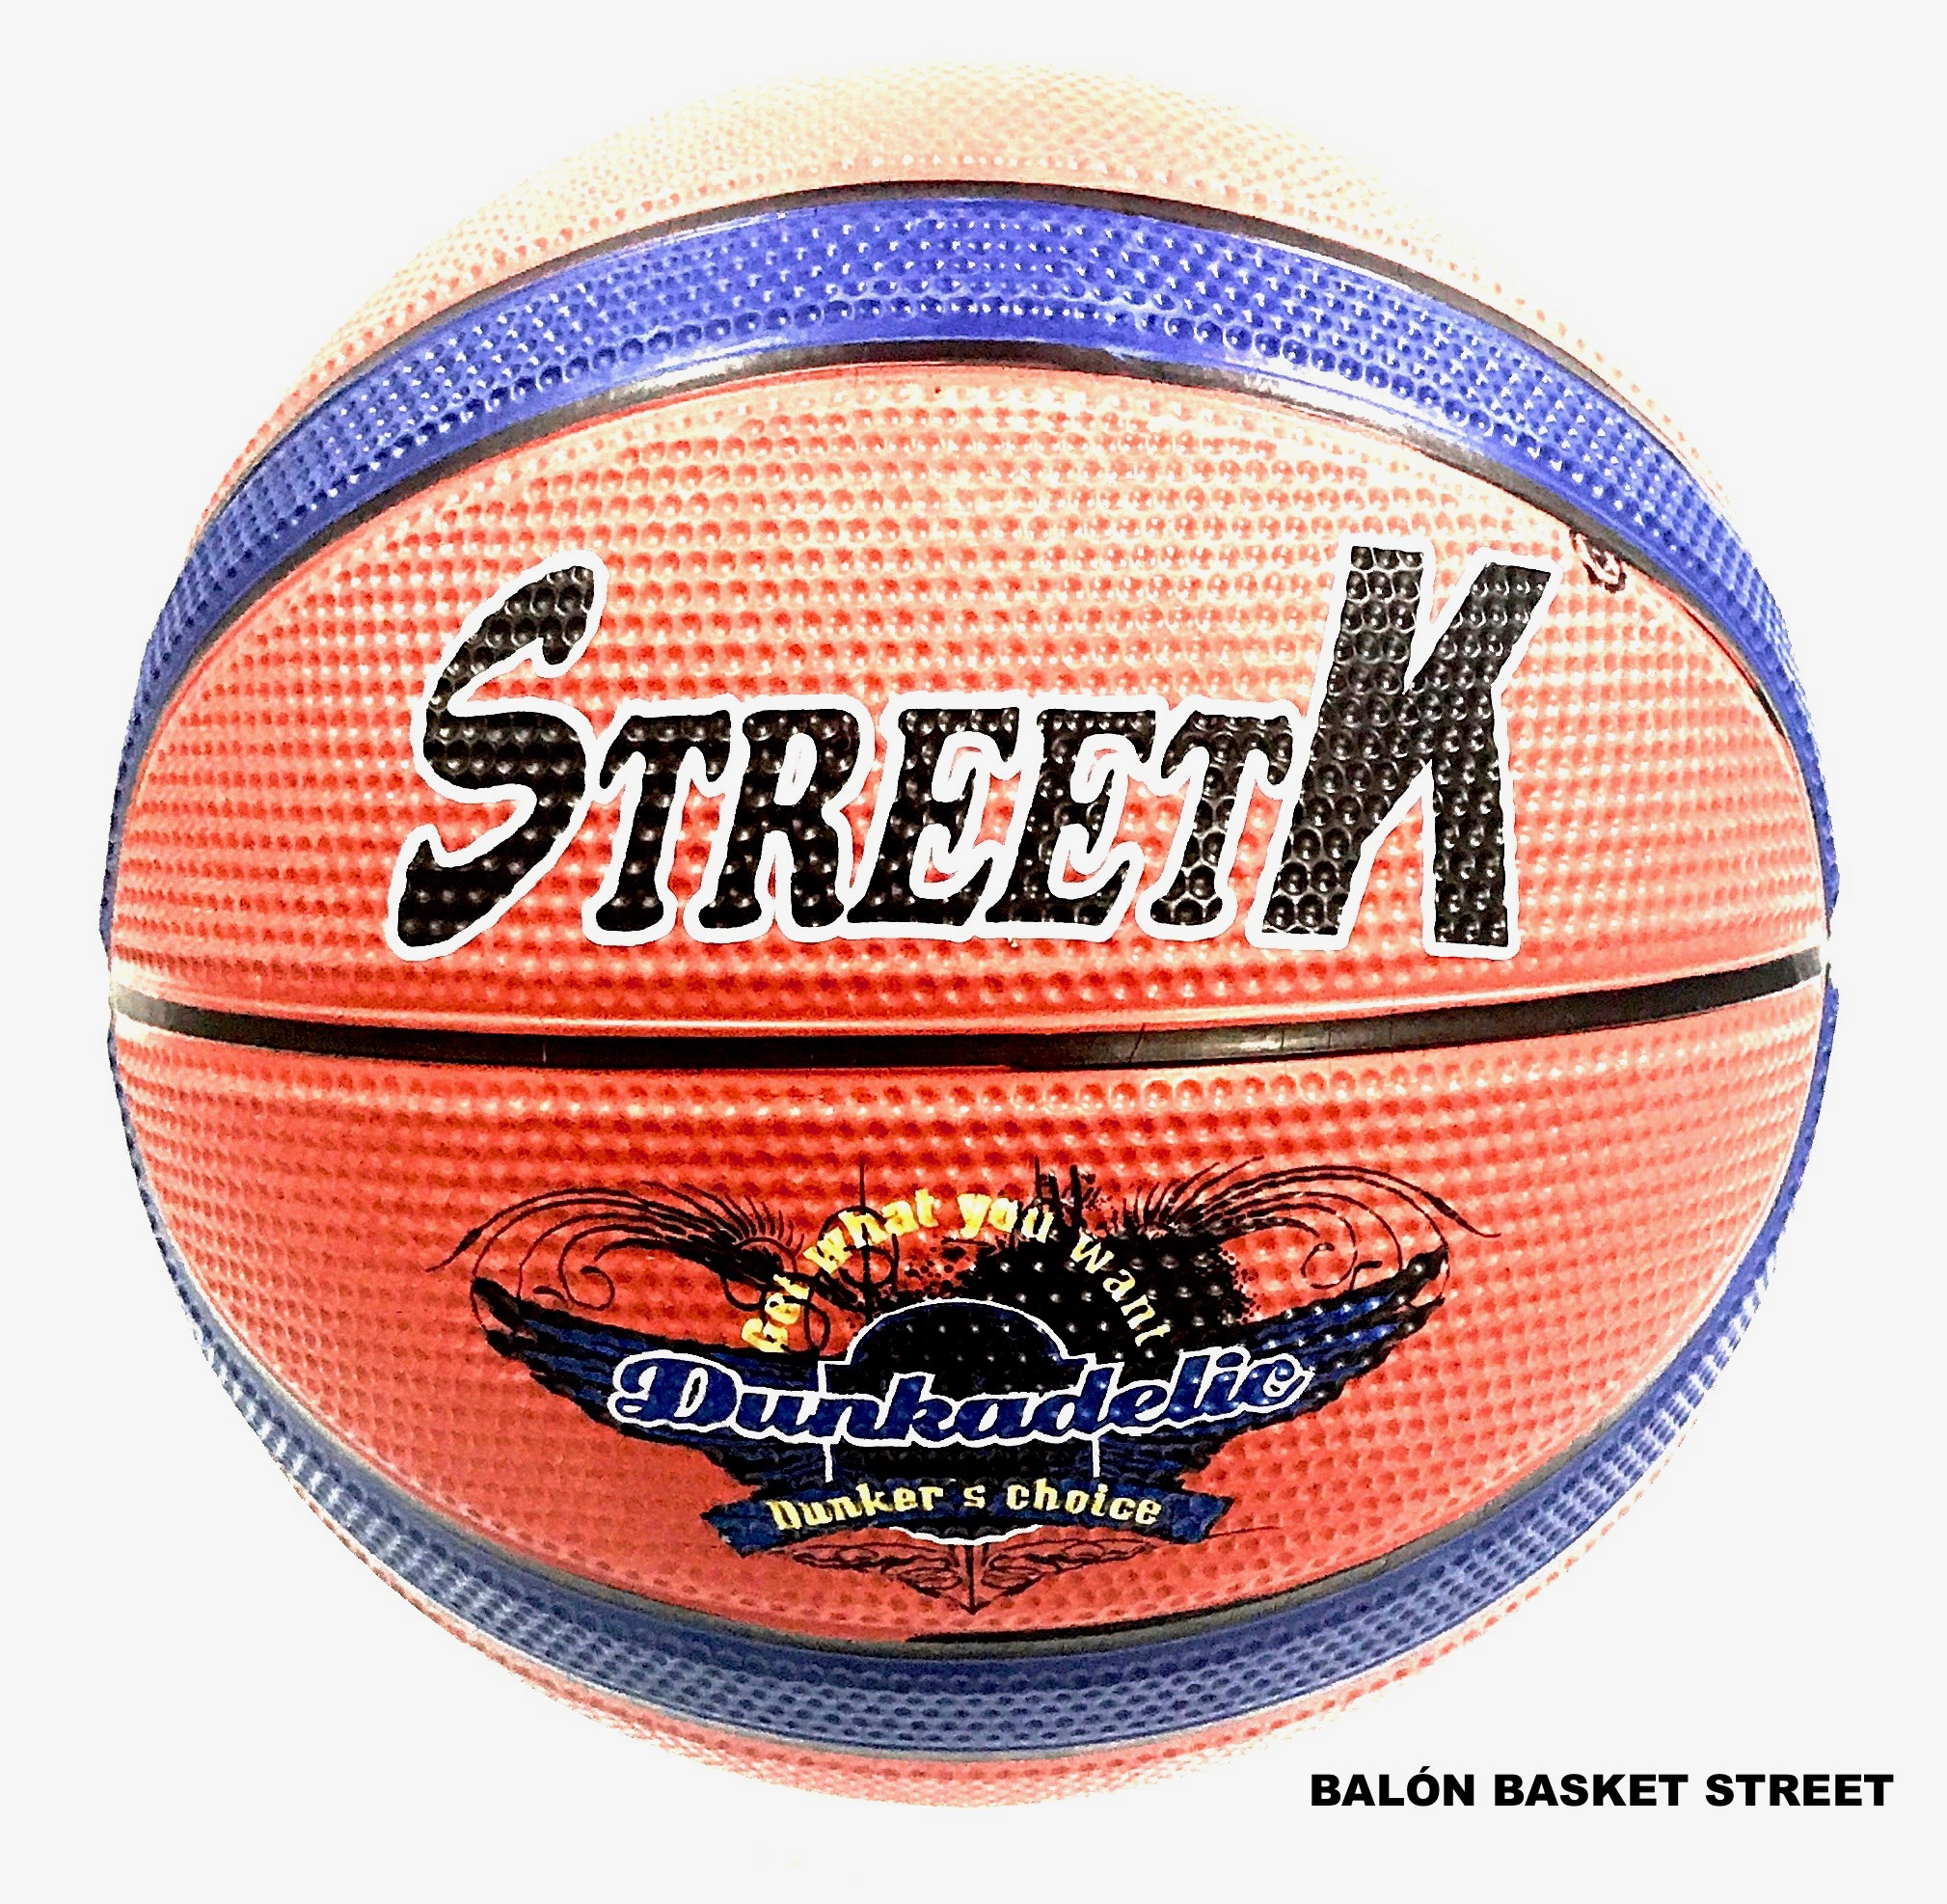 BALON BASKET STREET